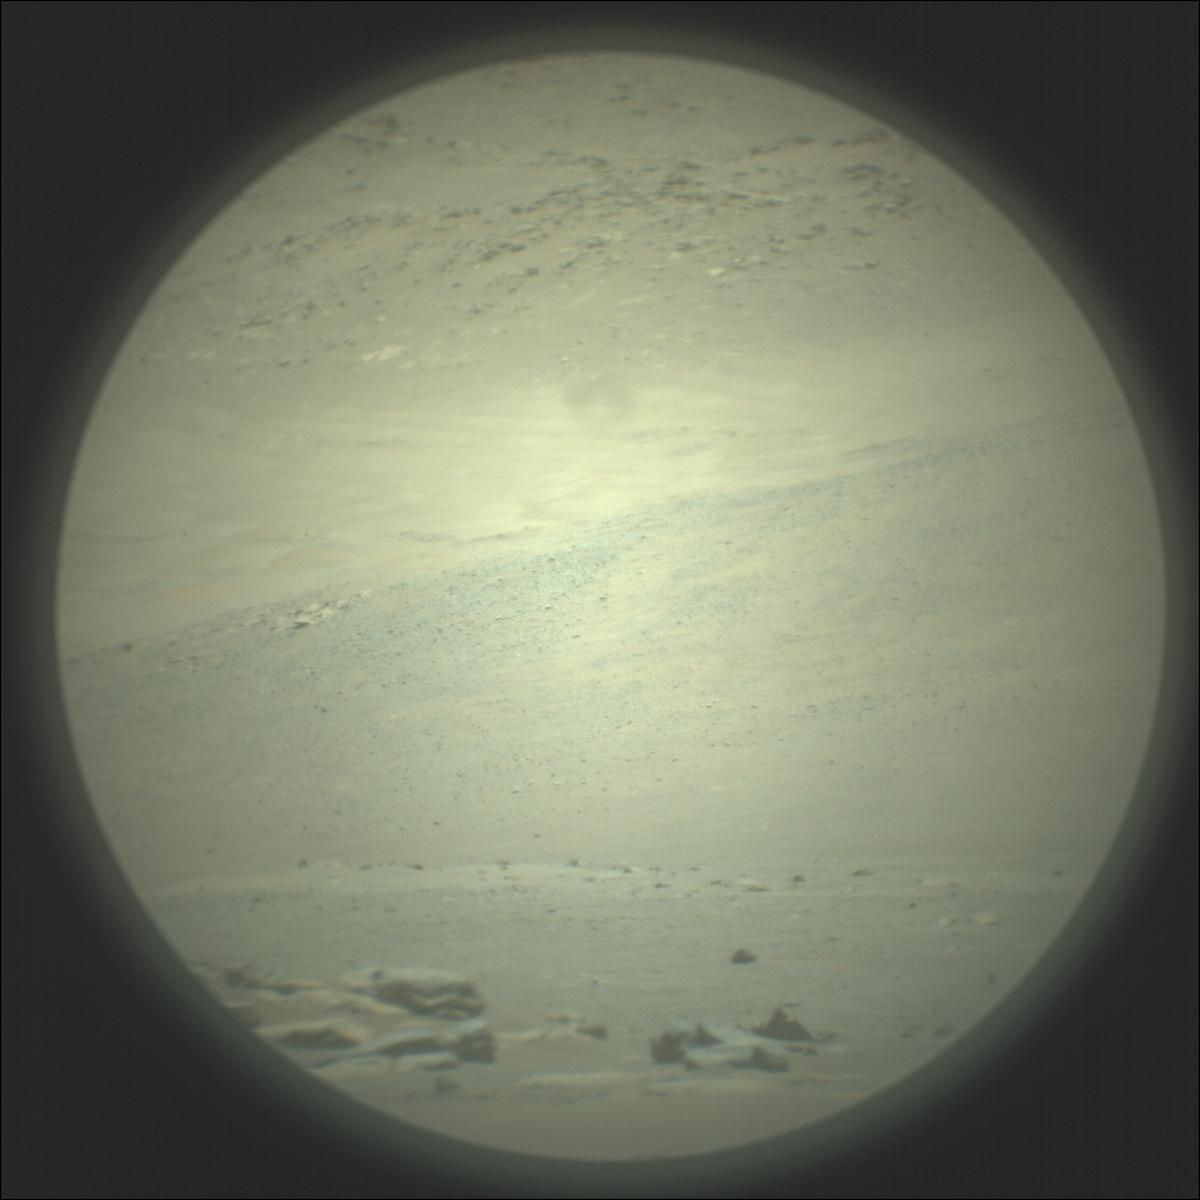 This image was taken by SUPERCAM_RMI onboard NASA's Mars rover Perseverance on Sol 113